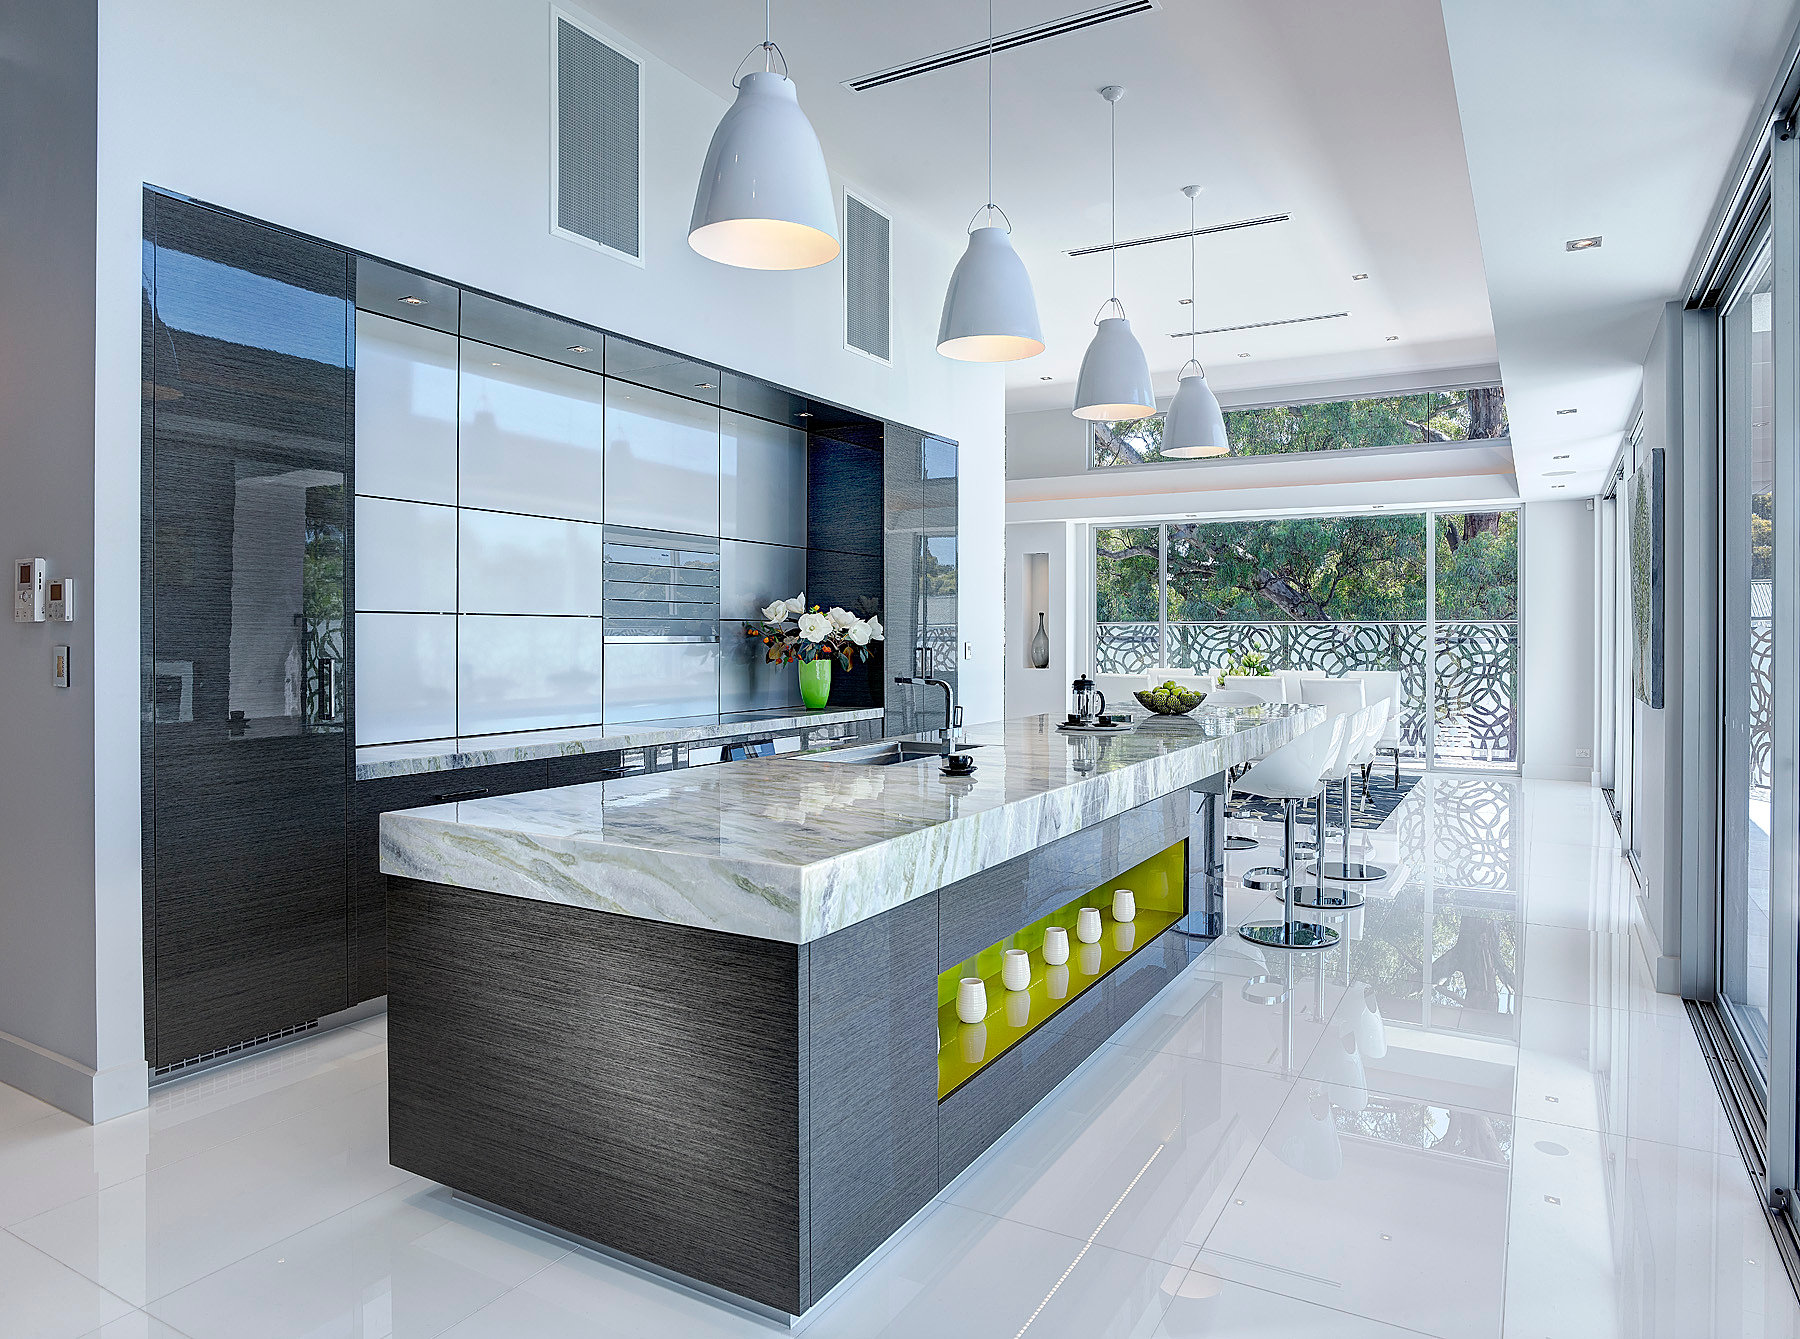 TMA Kitchen Design Tony Warren From Adelaide South Australia - Kitchen designs sa